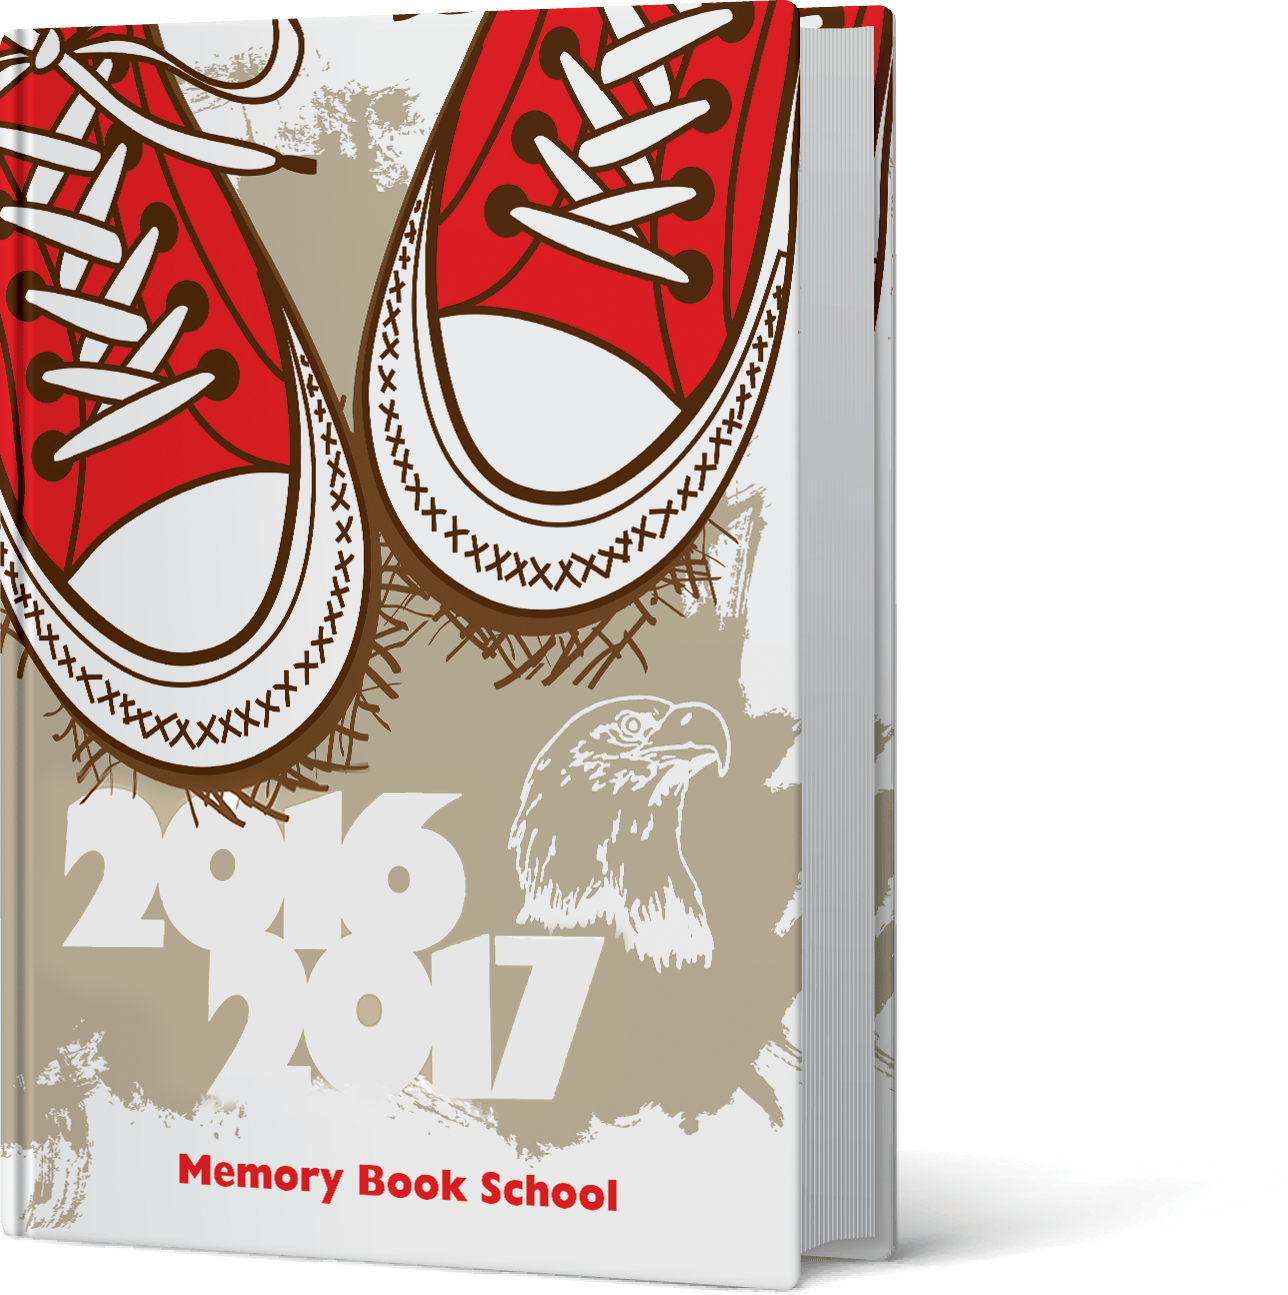 School Yearbook Cover Ideas : Custom school yearbook covers customization